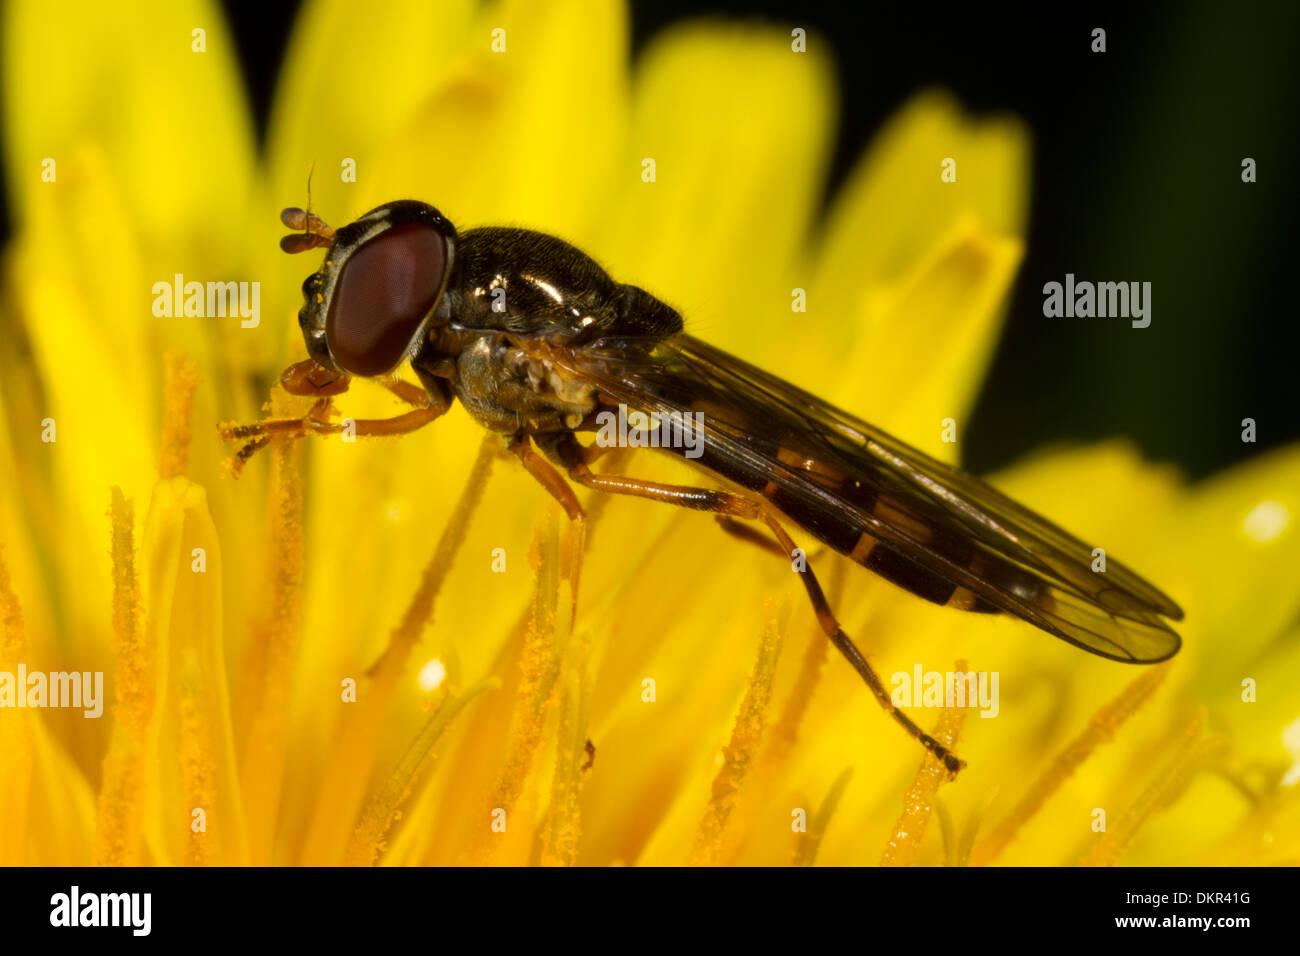 Chequered Hoverfly (Melanostoma scalare) female in an dandelion flower. Powys, Wales. May. - Stock Image